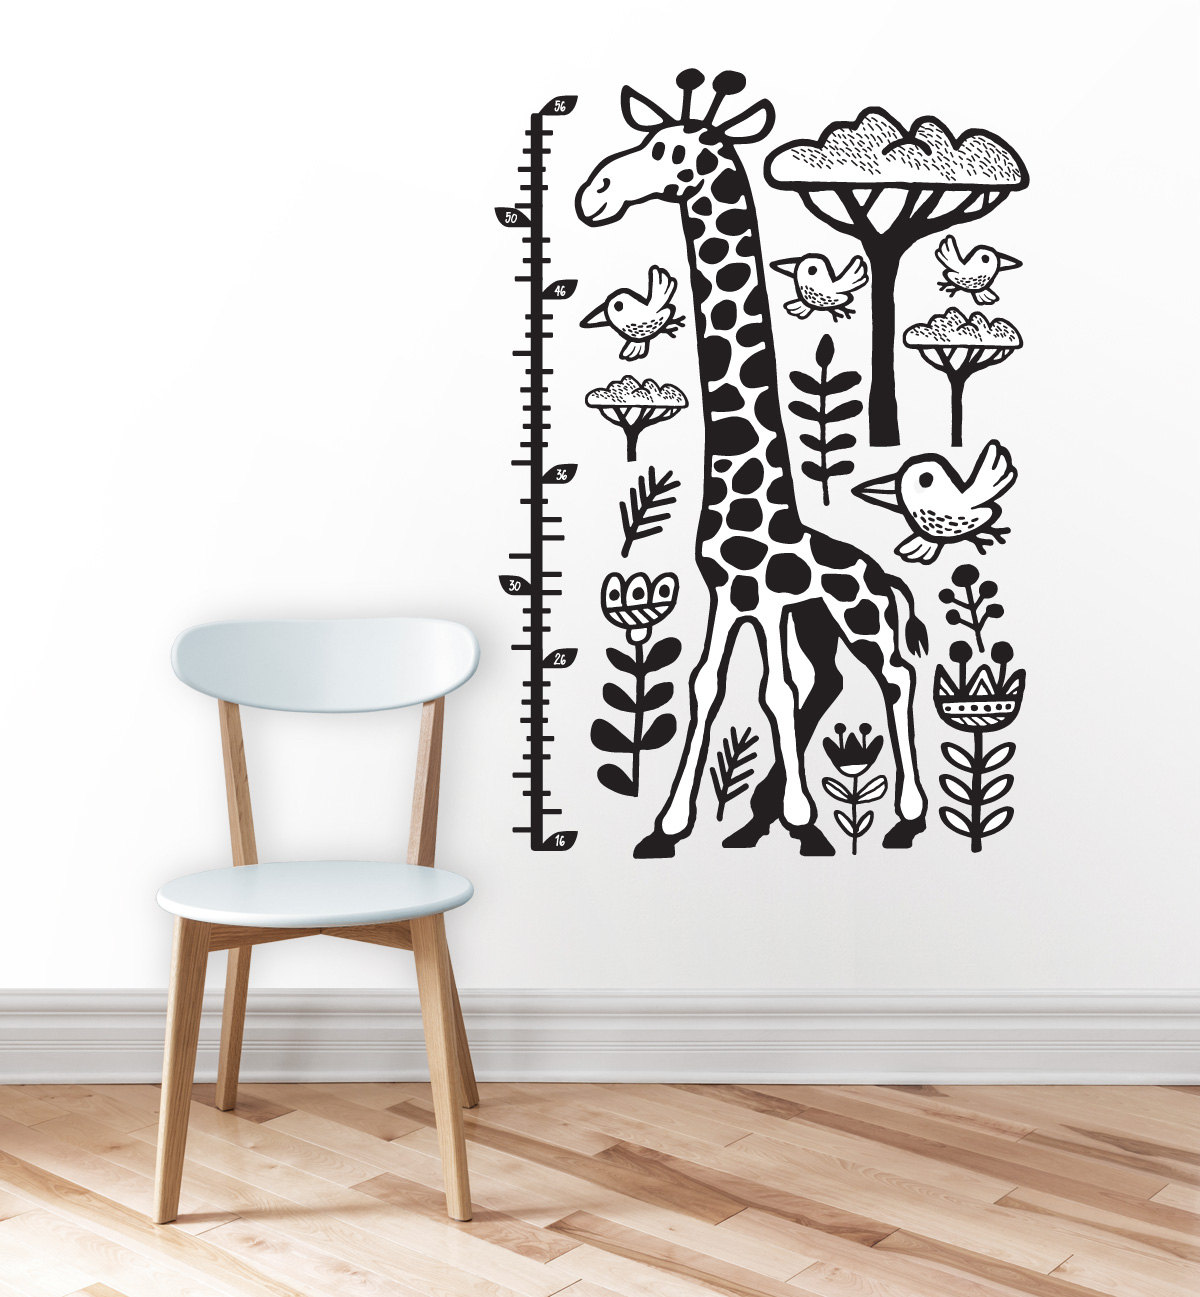 Growth chart height chart kids growth chart giraffe wall zoom geenschuldenfo Image collections